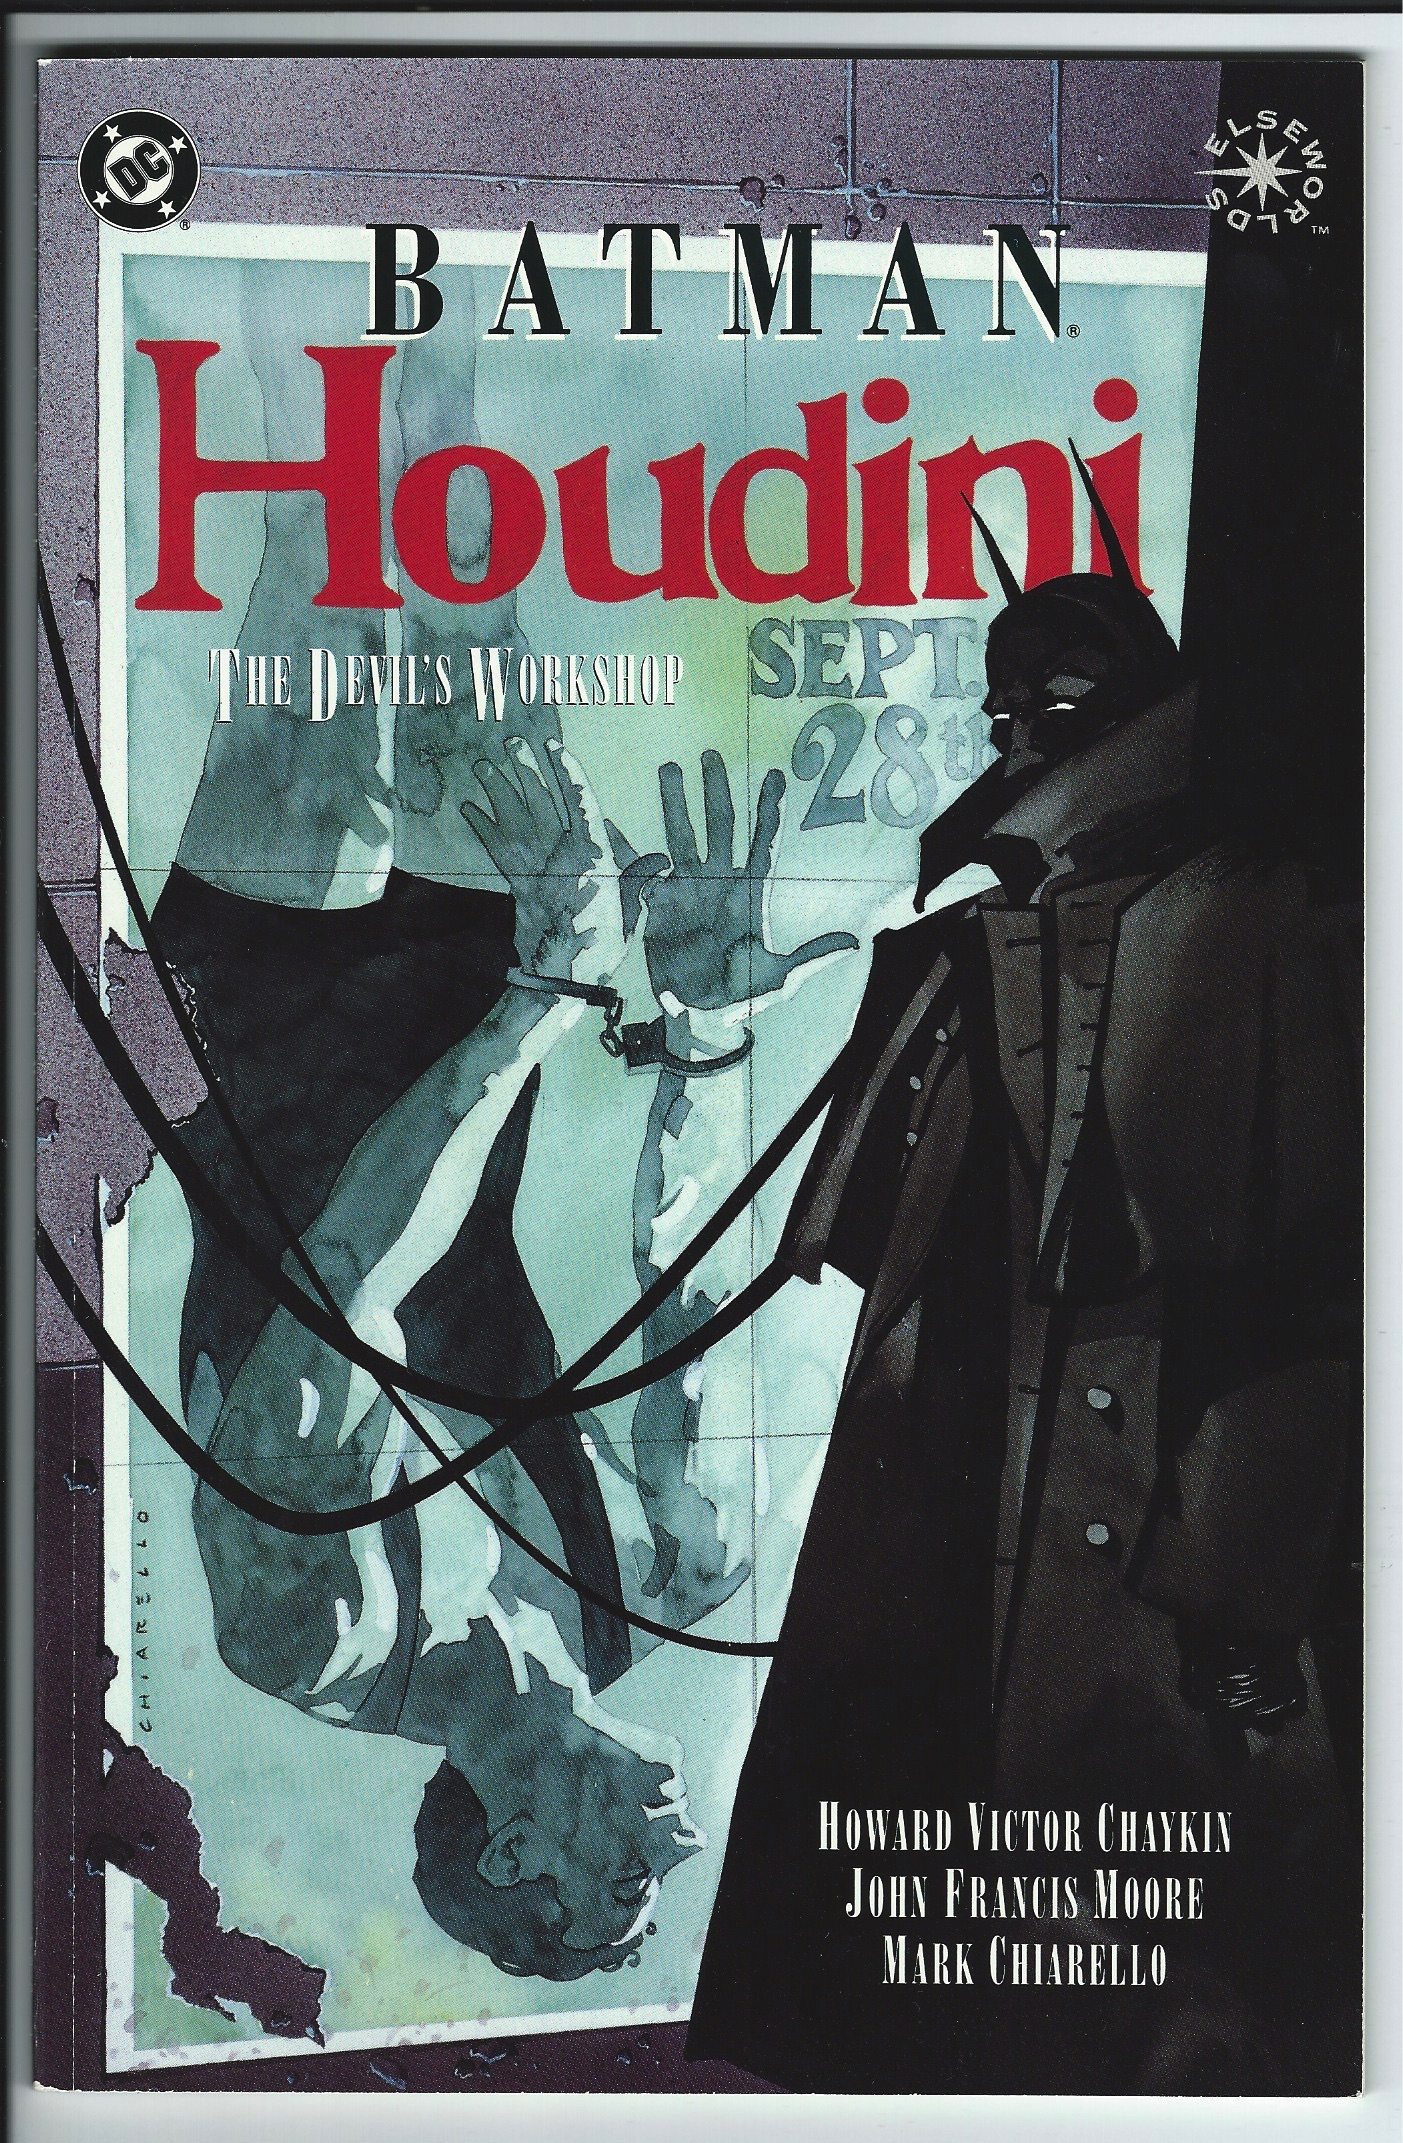 DC Comics Elseworlds Batman: Houdini Graphic Novel